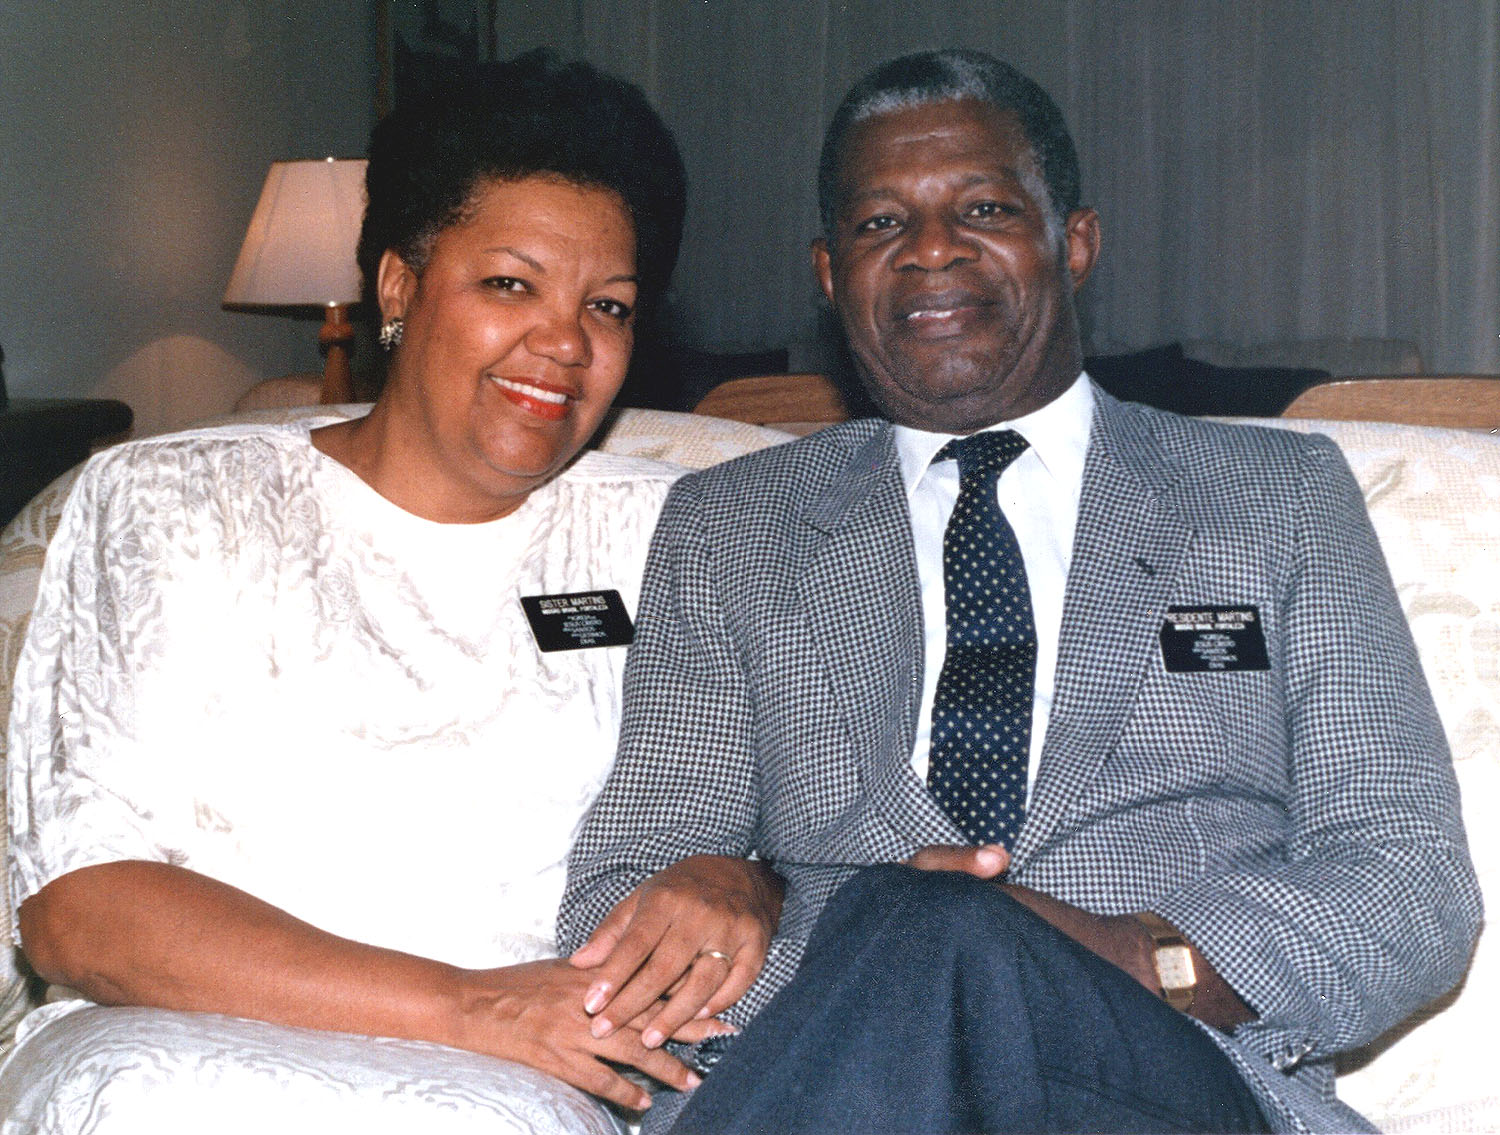 President Helvécio Martins and Sister Rudá Martins of the Brazil Fortaleza Mission in 1988. He presided over that mission from 1987 until his call in 1990 as a member of the Church's Second Quorum of the Seventy.